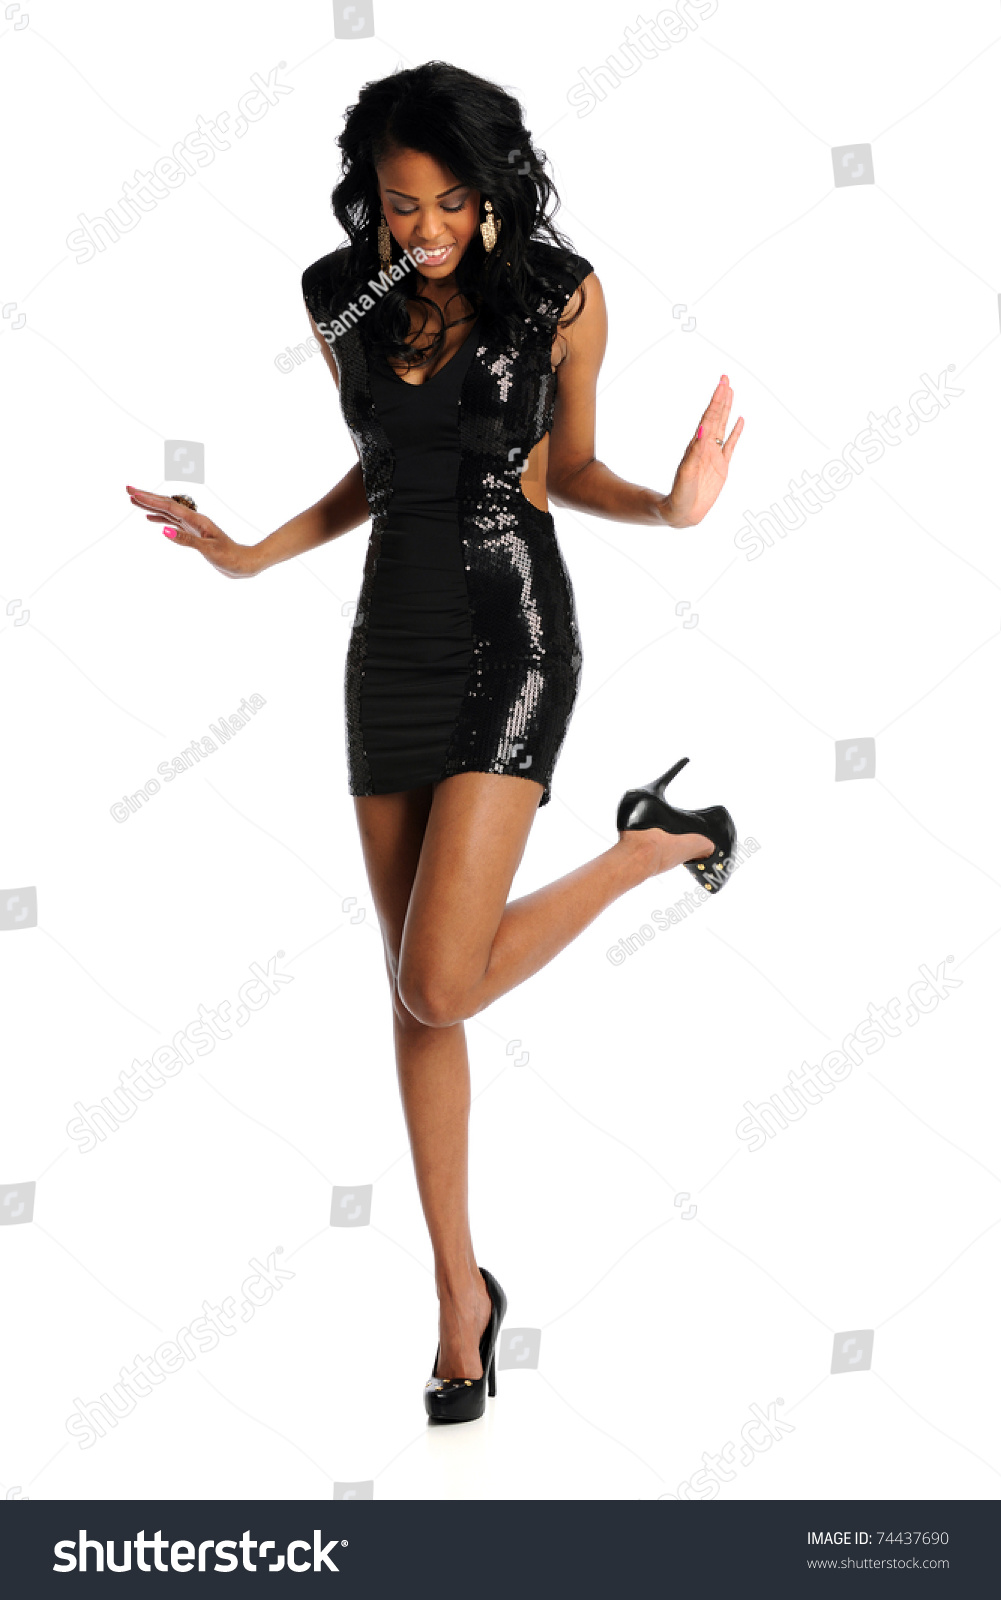 young blond fashion model wearing a black dress isolated